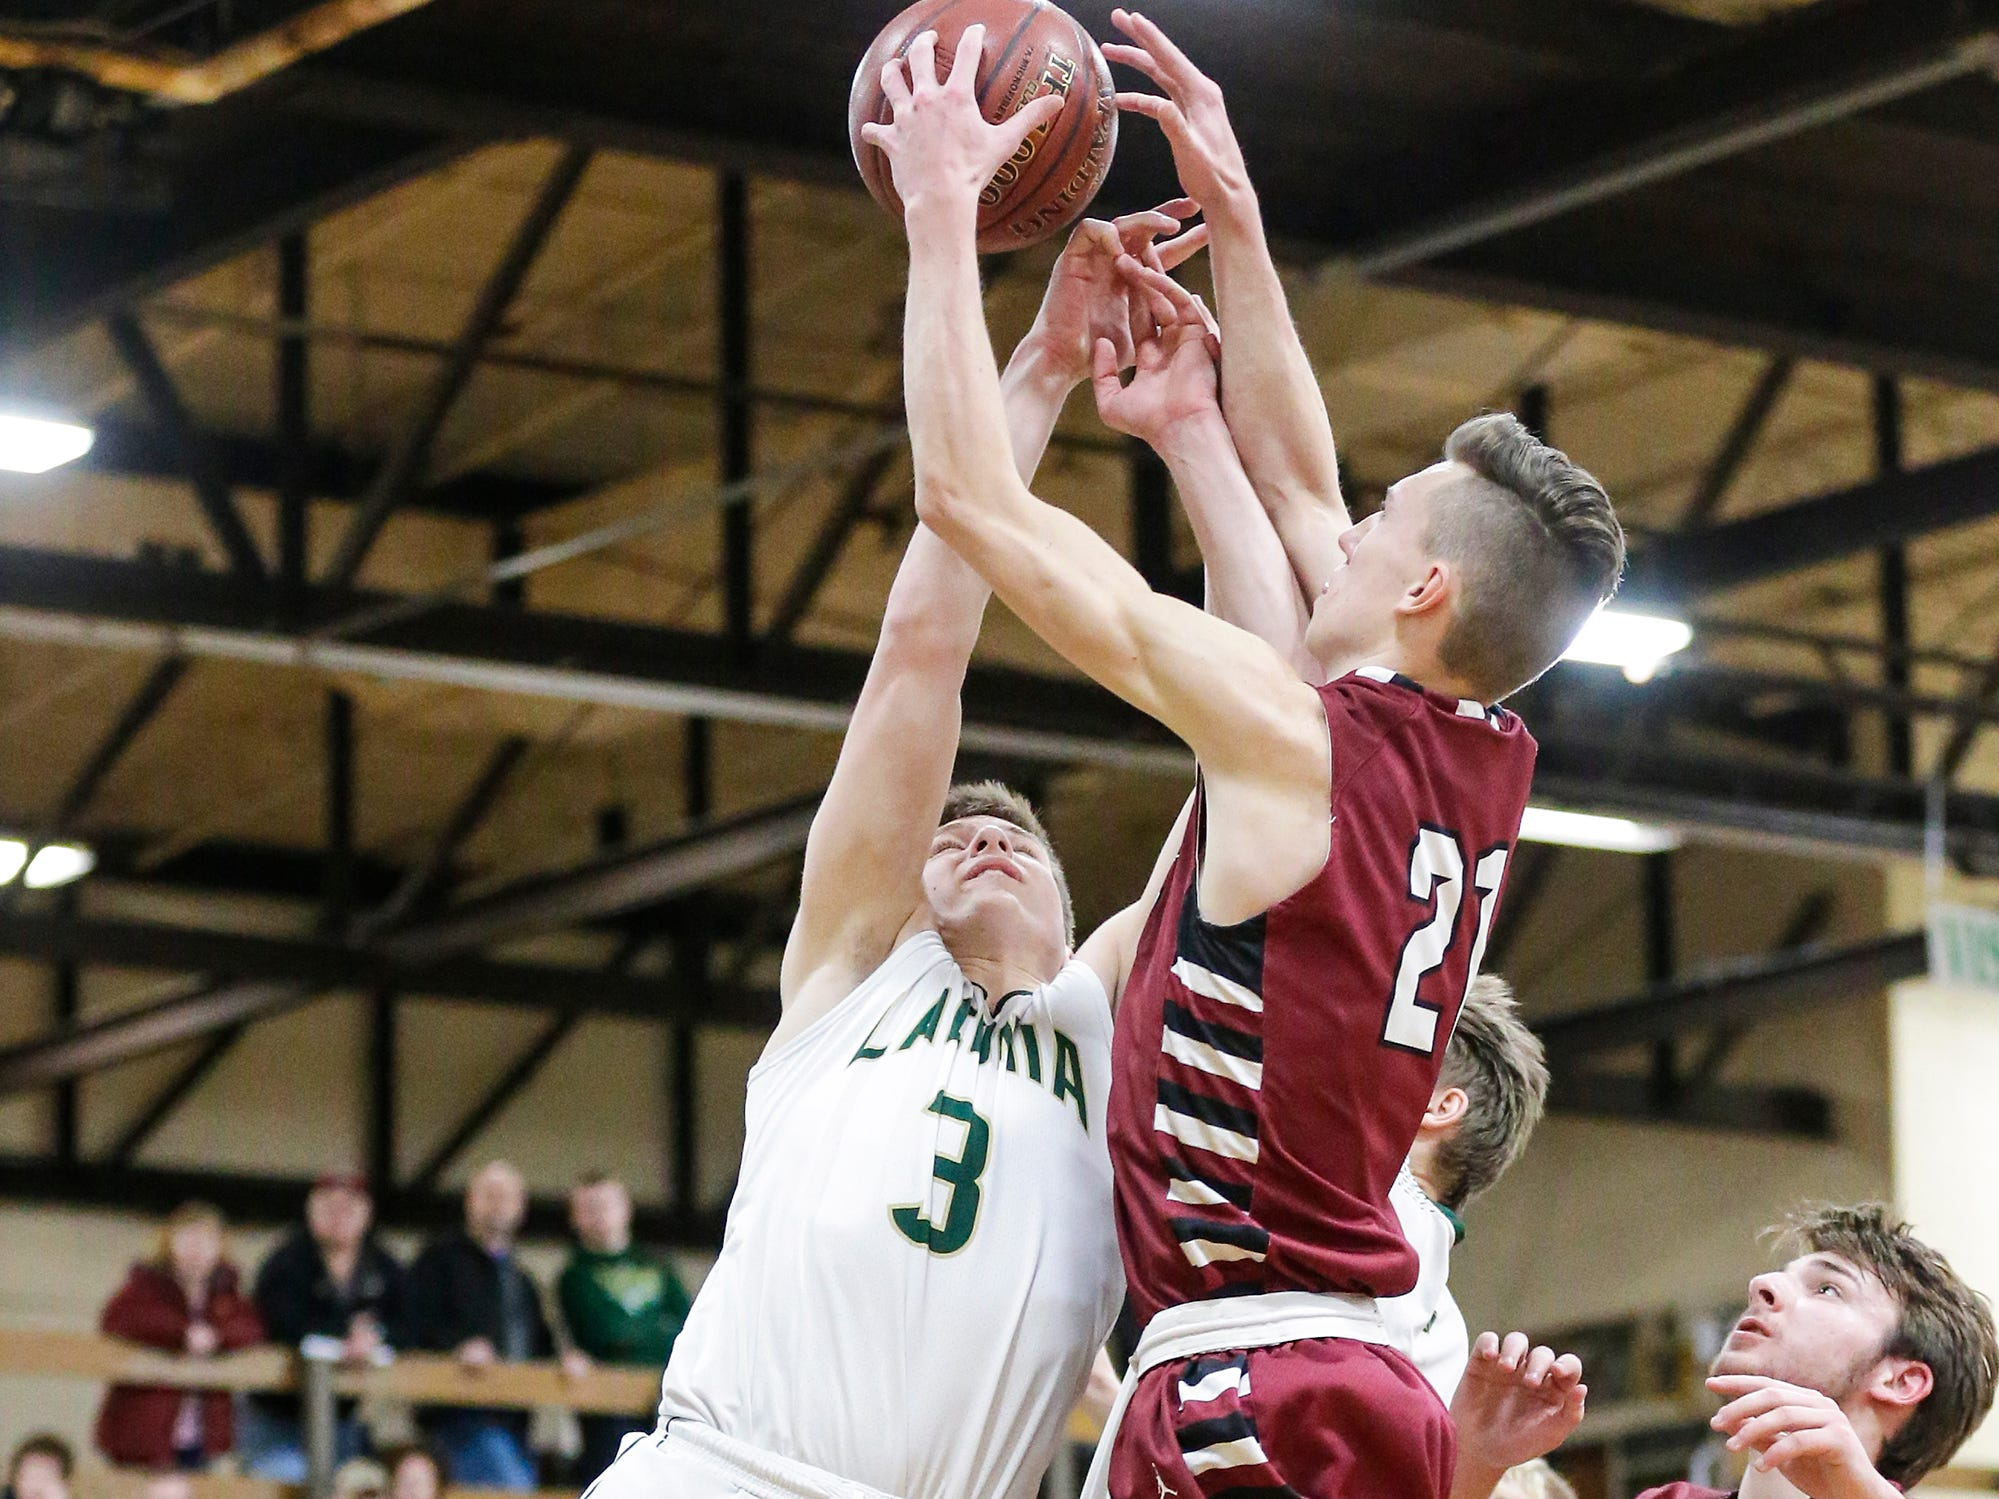 Laconia High School boys basketball's Reed Gunnink and Mayville High School's Jackson Mittelstadt battle for a rebound during their game Friday, January 25, 2019 in Rosendale. Laconia won the game 80-54. Doug Raflik/USA TODAY NETWORK-Wisconsin